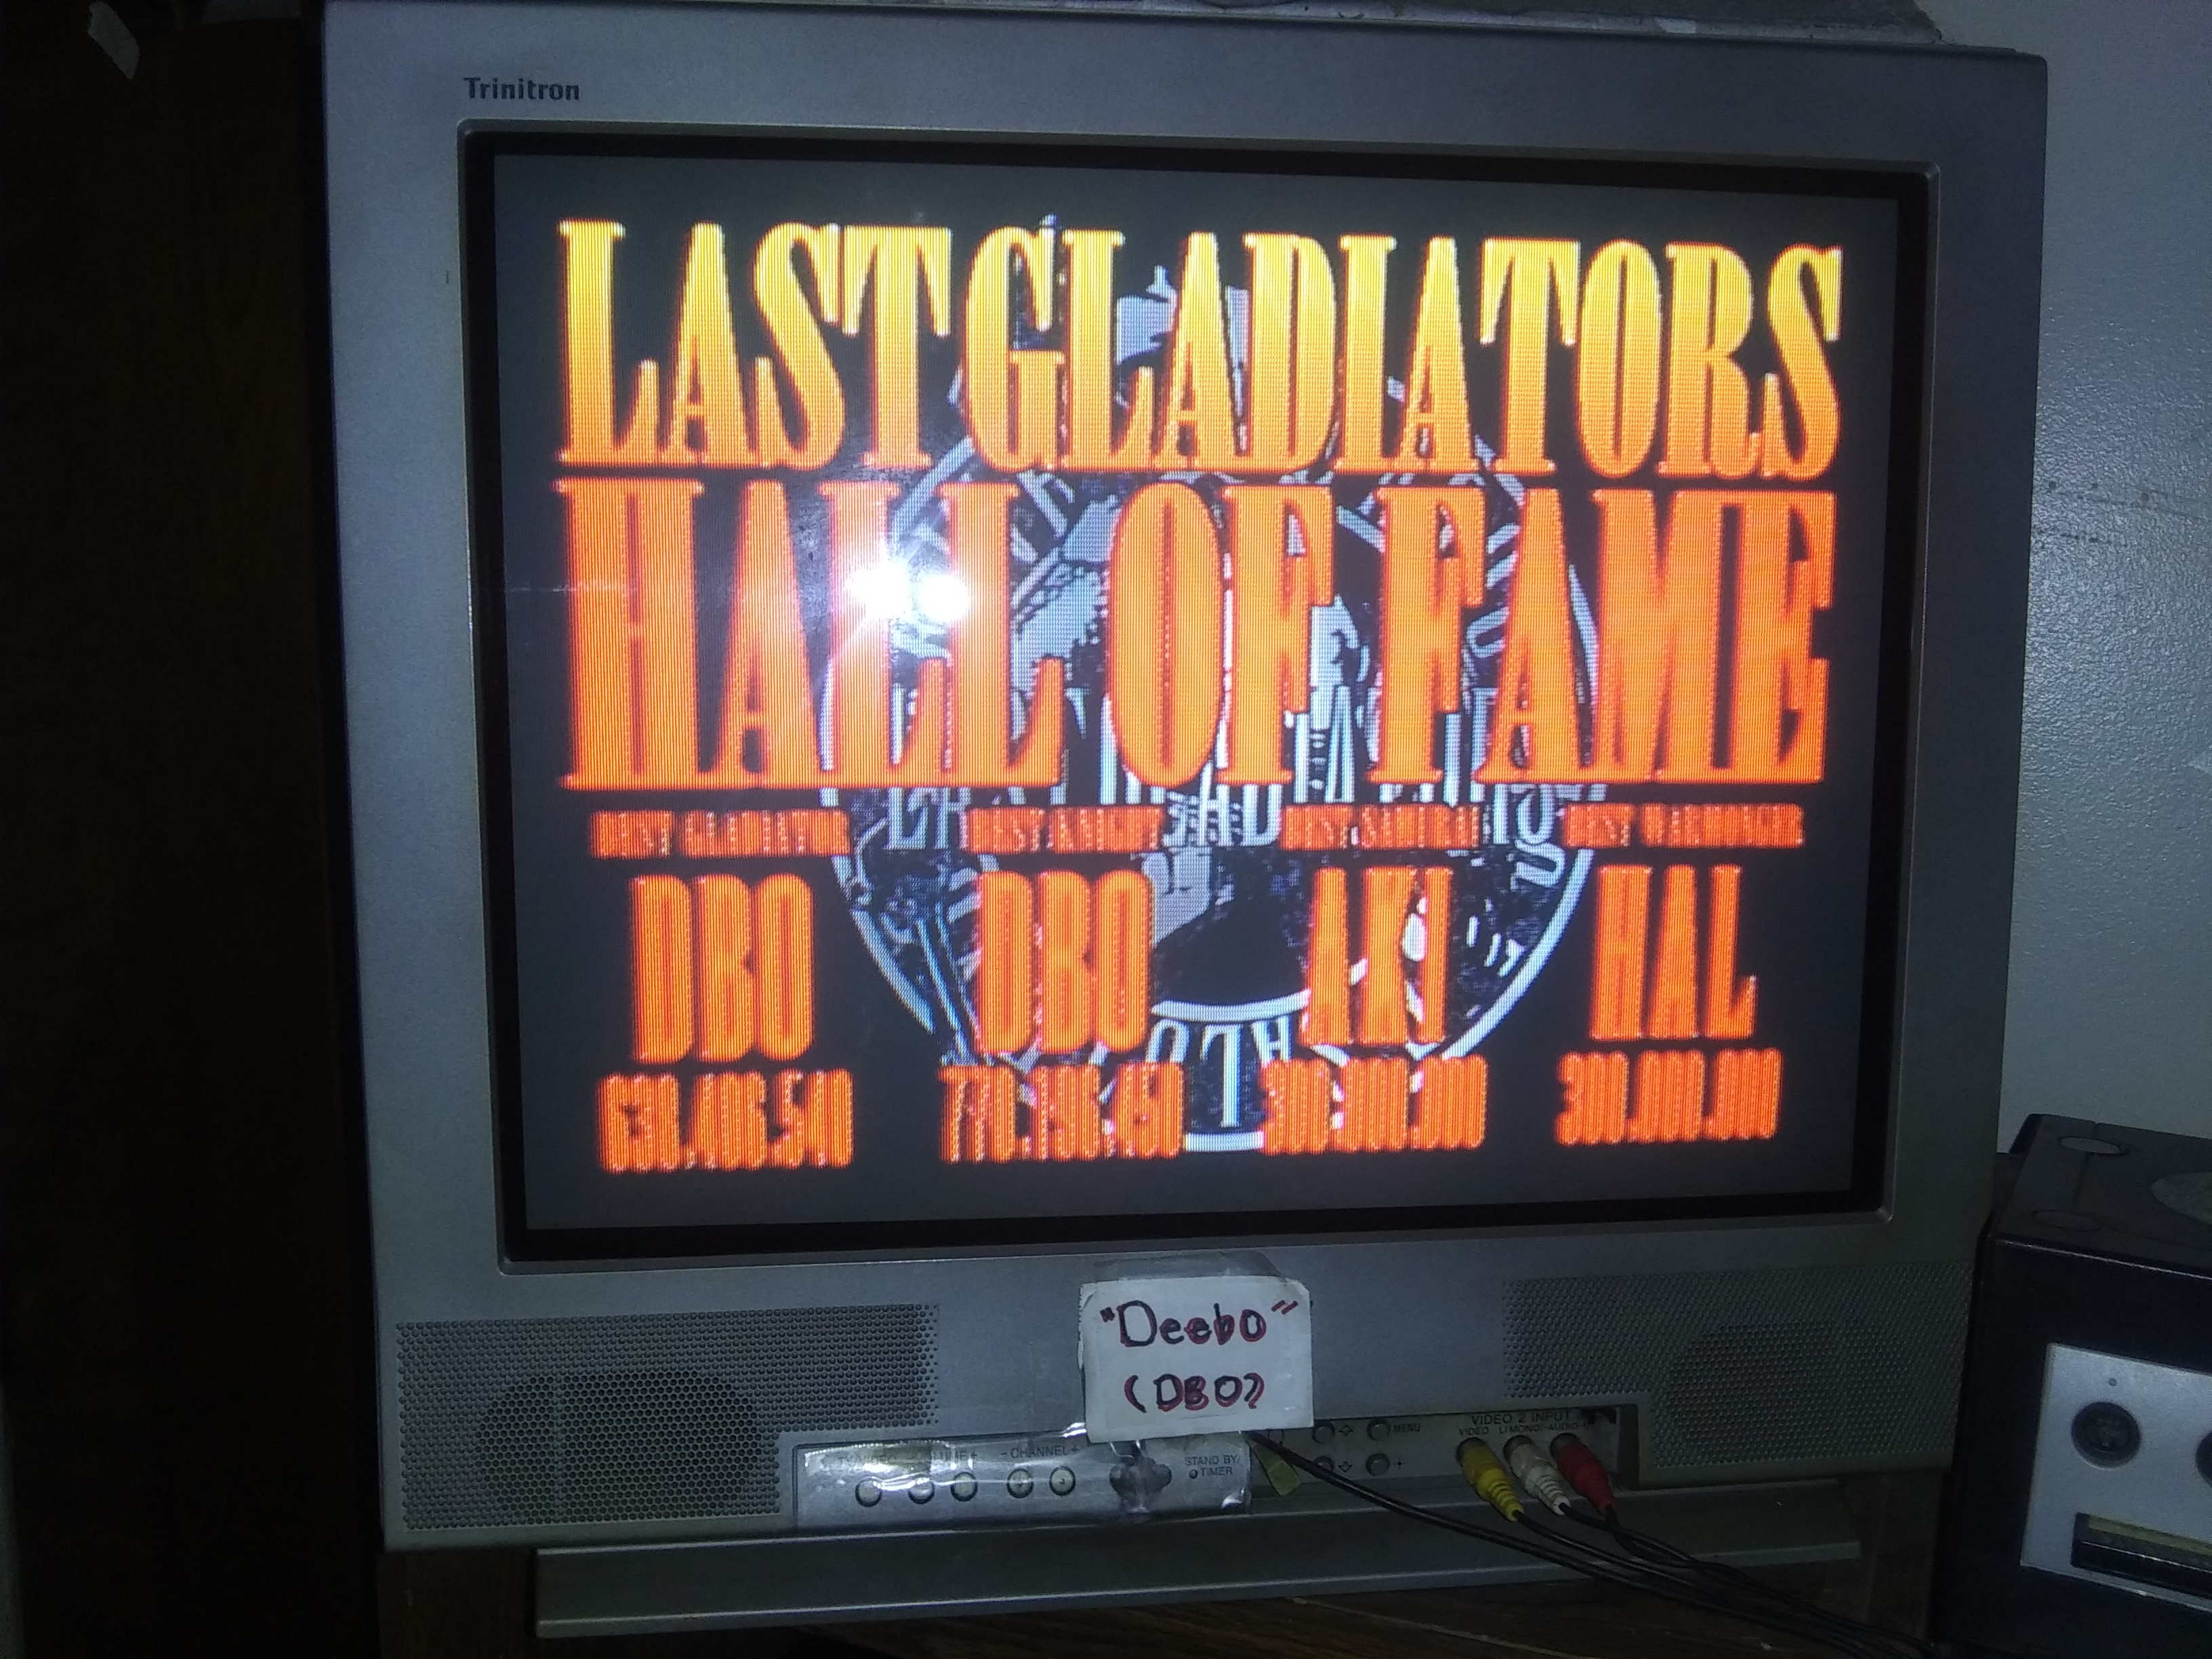 Deebo: Digital Pinball: Last Gladiators: Gladiators (Sega Saturn) 638,406,540 points on 2019-07-16 02:57:24